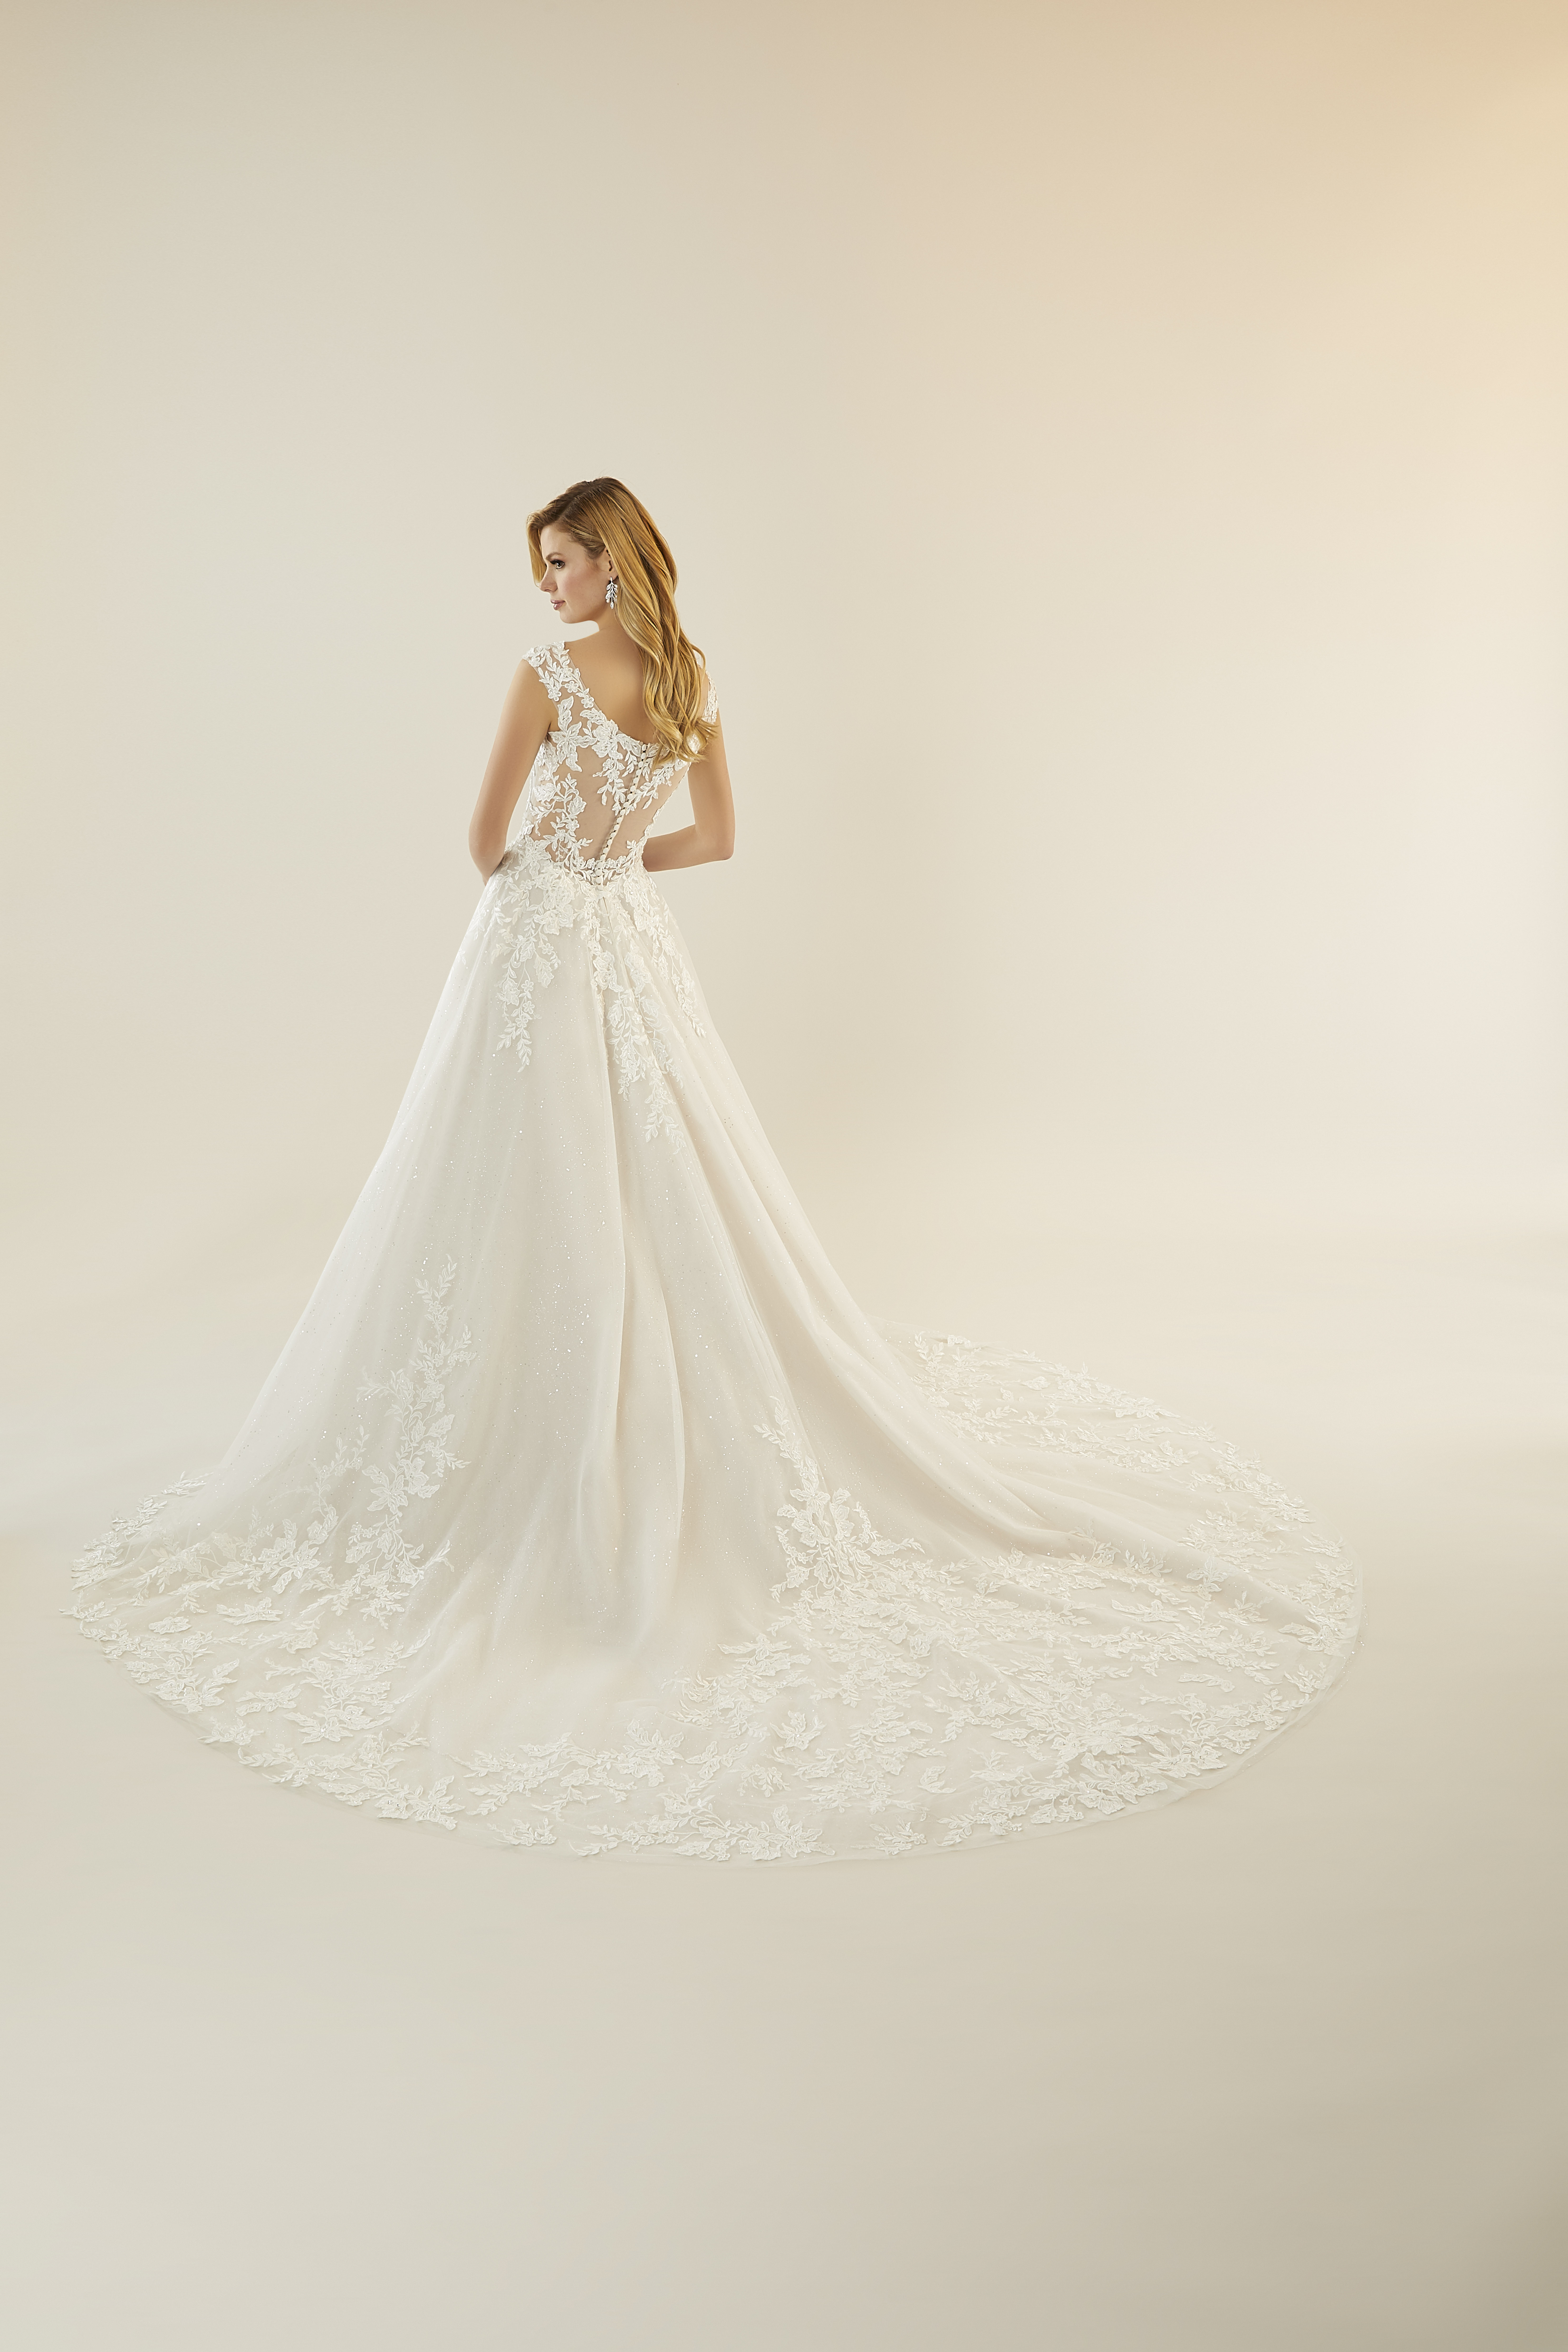 Madeline-Gardner-New-York-51747-wedding-dress-maribel